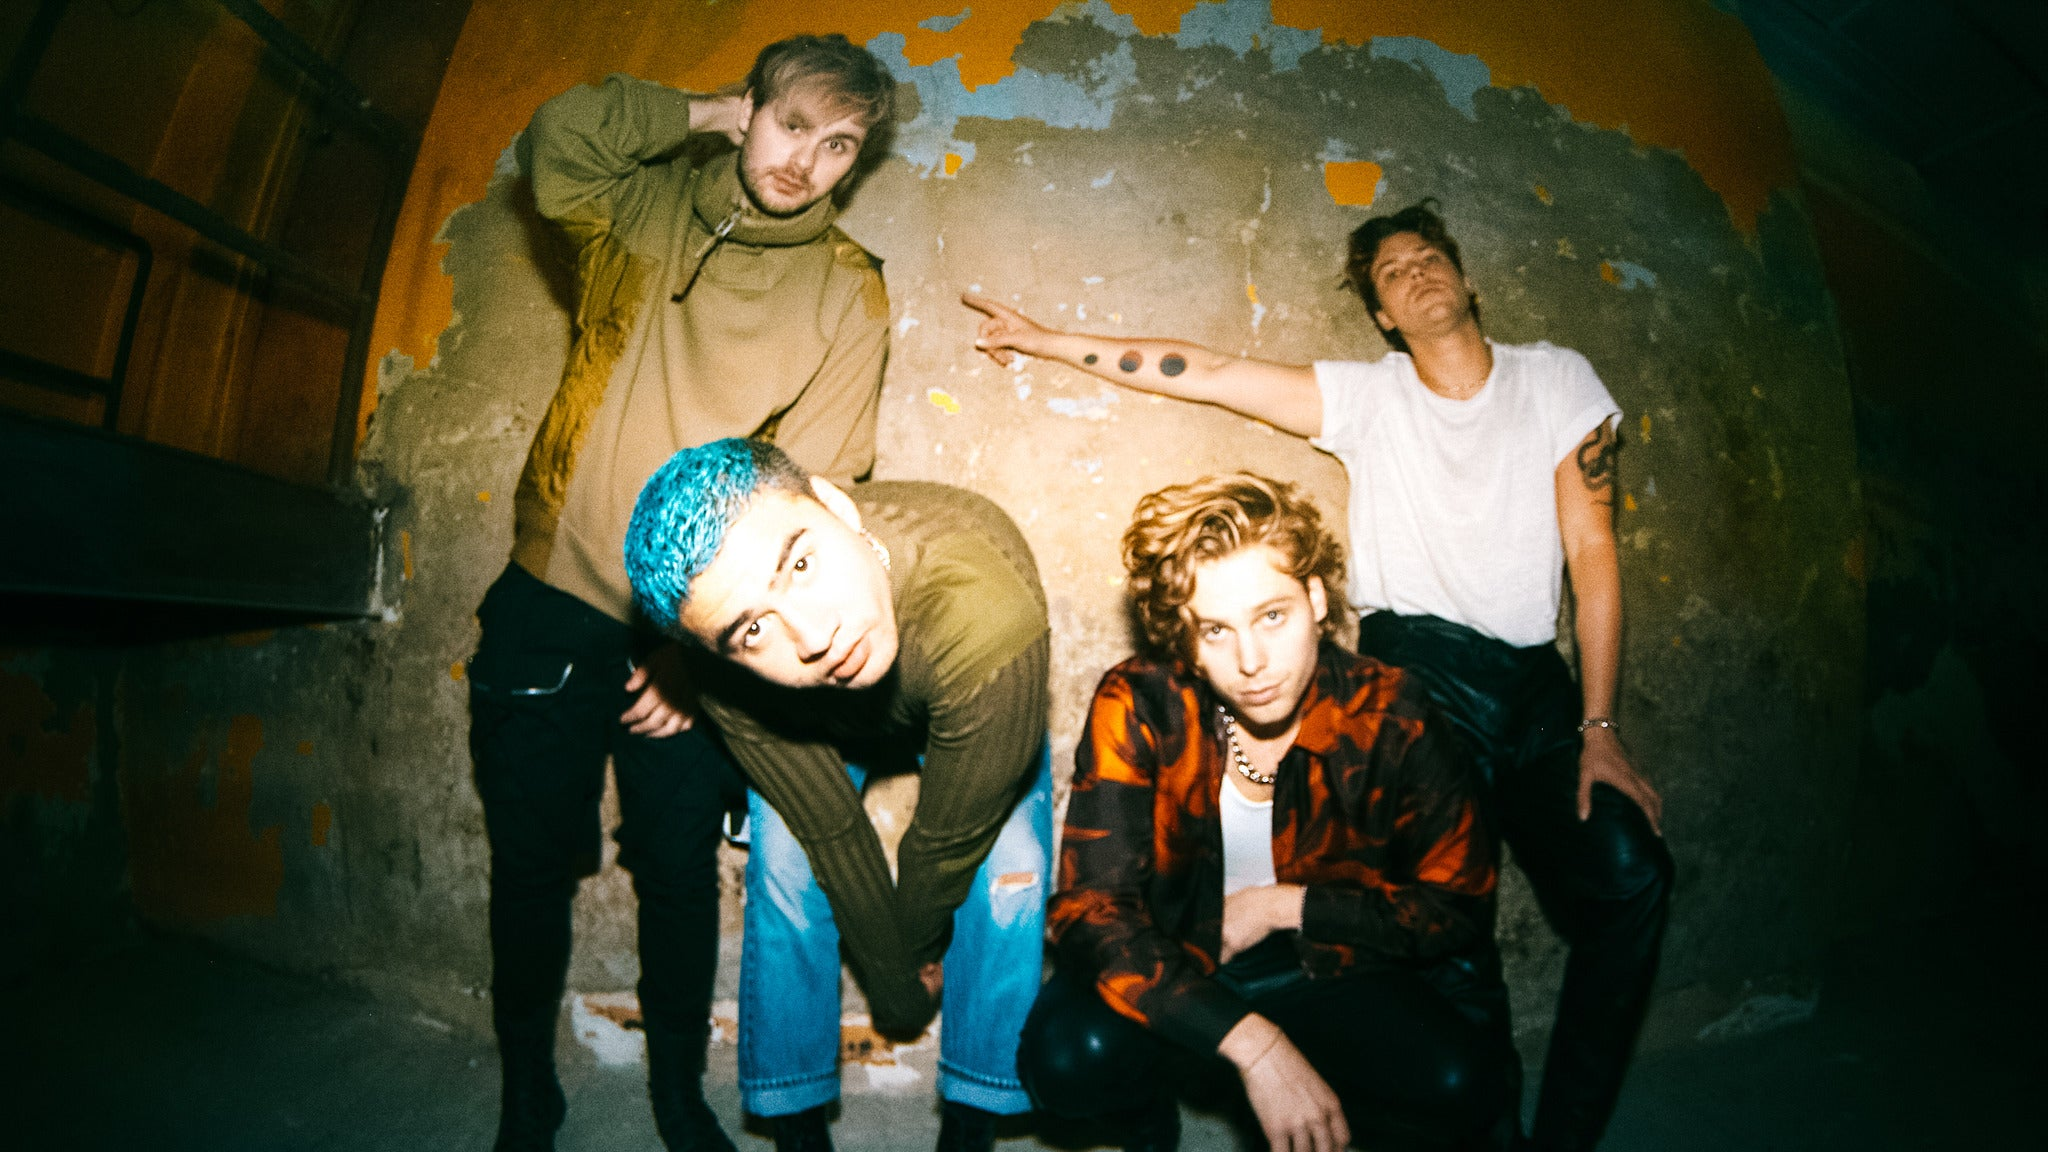 5 Seconds of Summer | Soundcheck Standing Experience